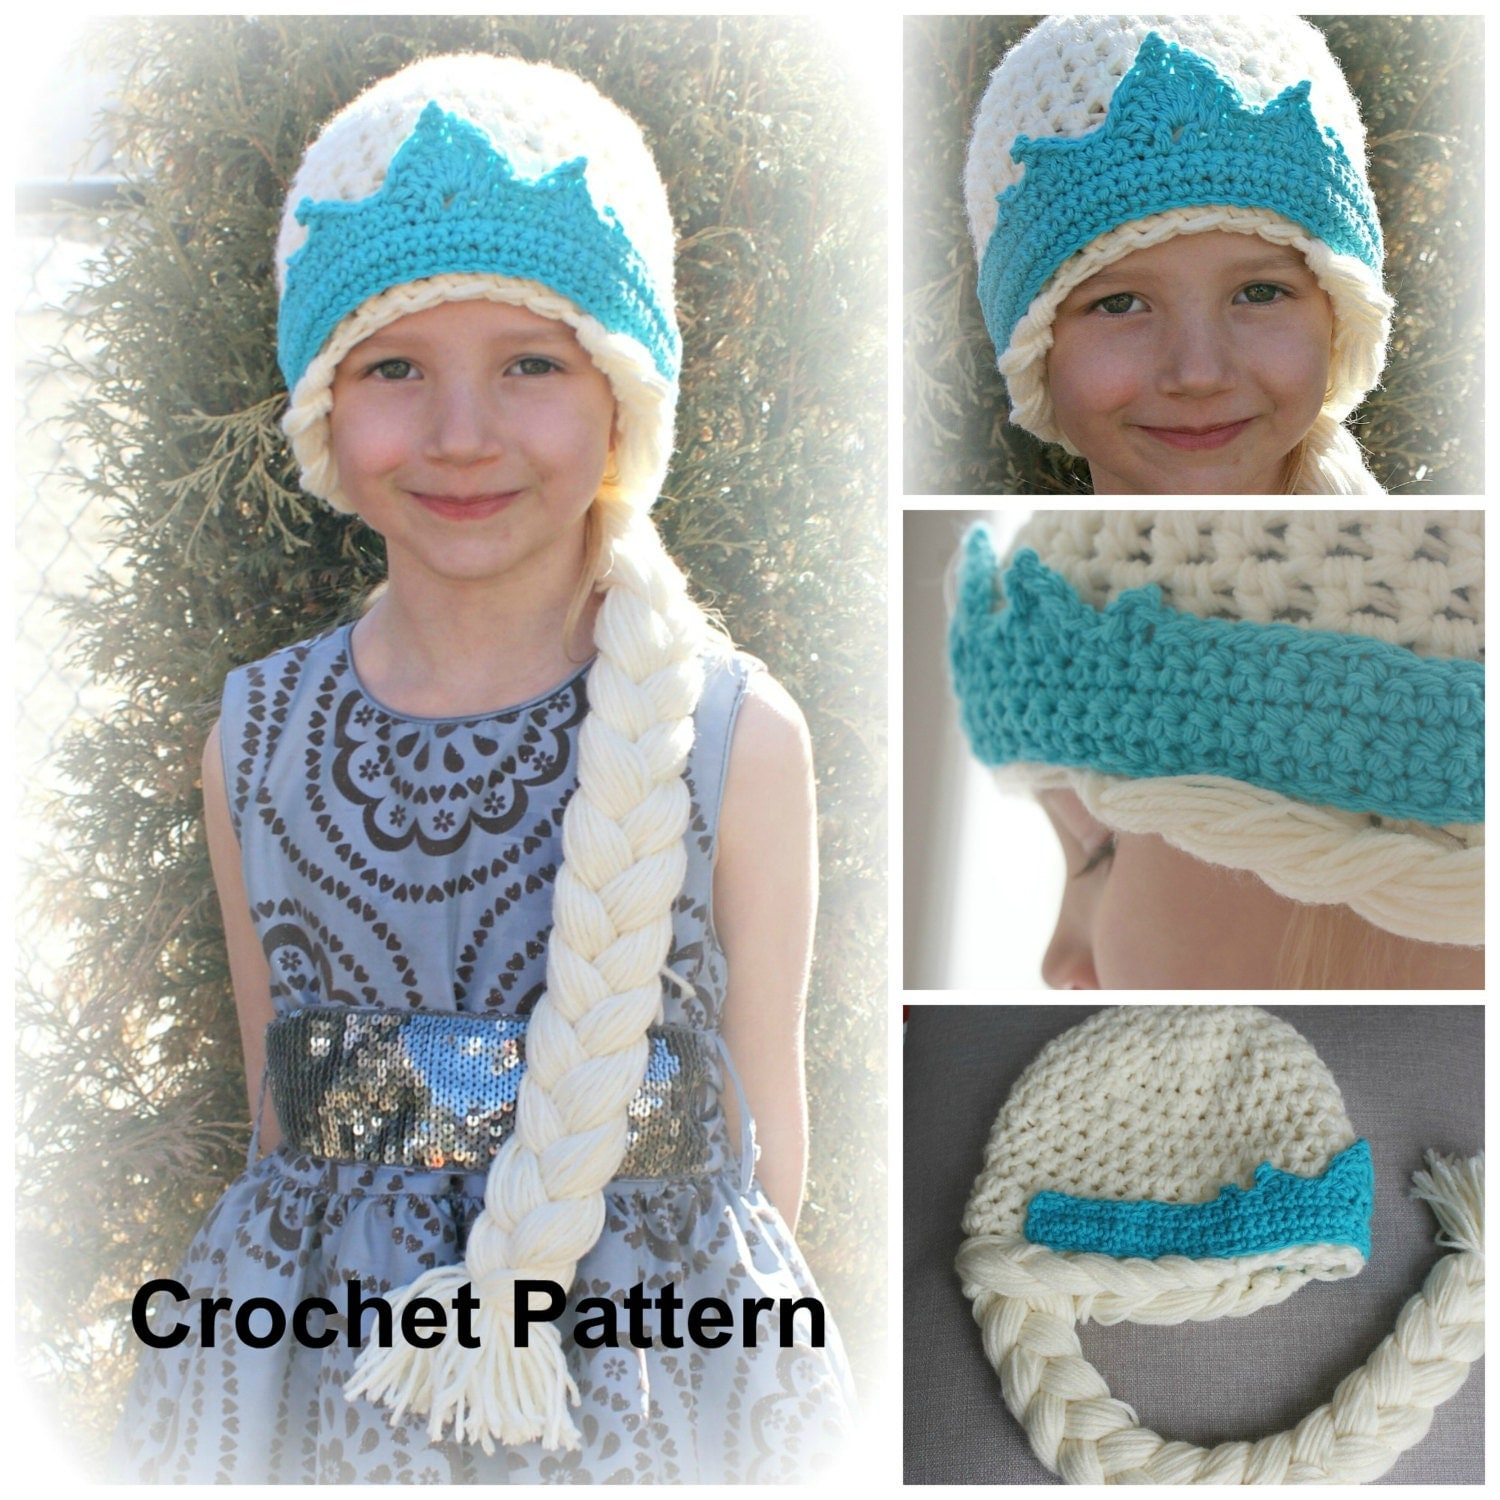 Crochet Hat Patterns Elsa : Instant Download QUEEN ELSA Hat Pattern Crochet Pattern